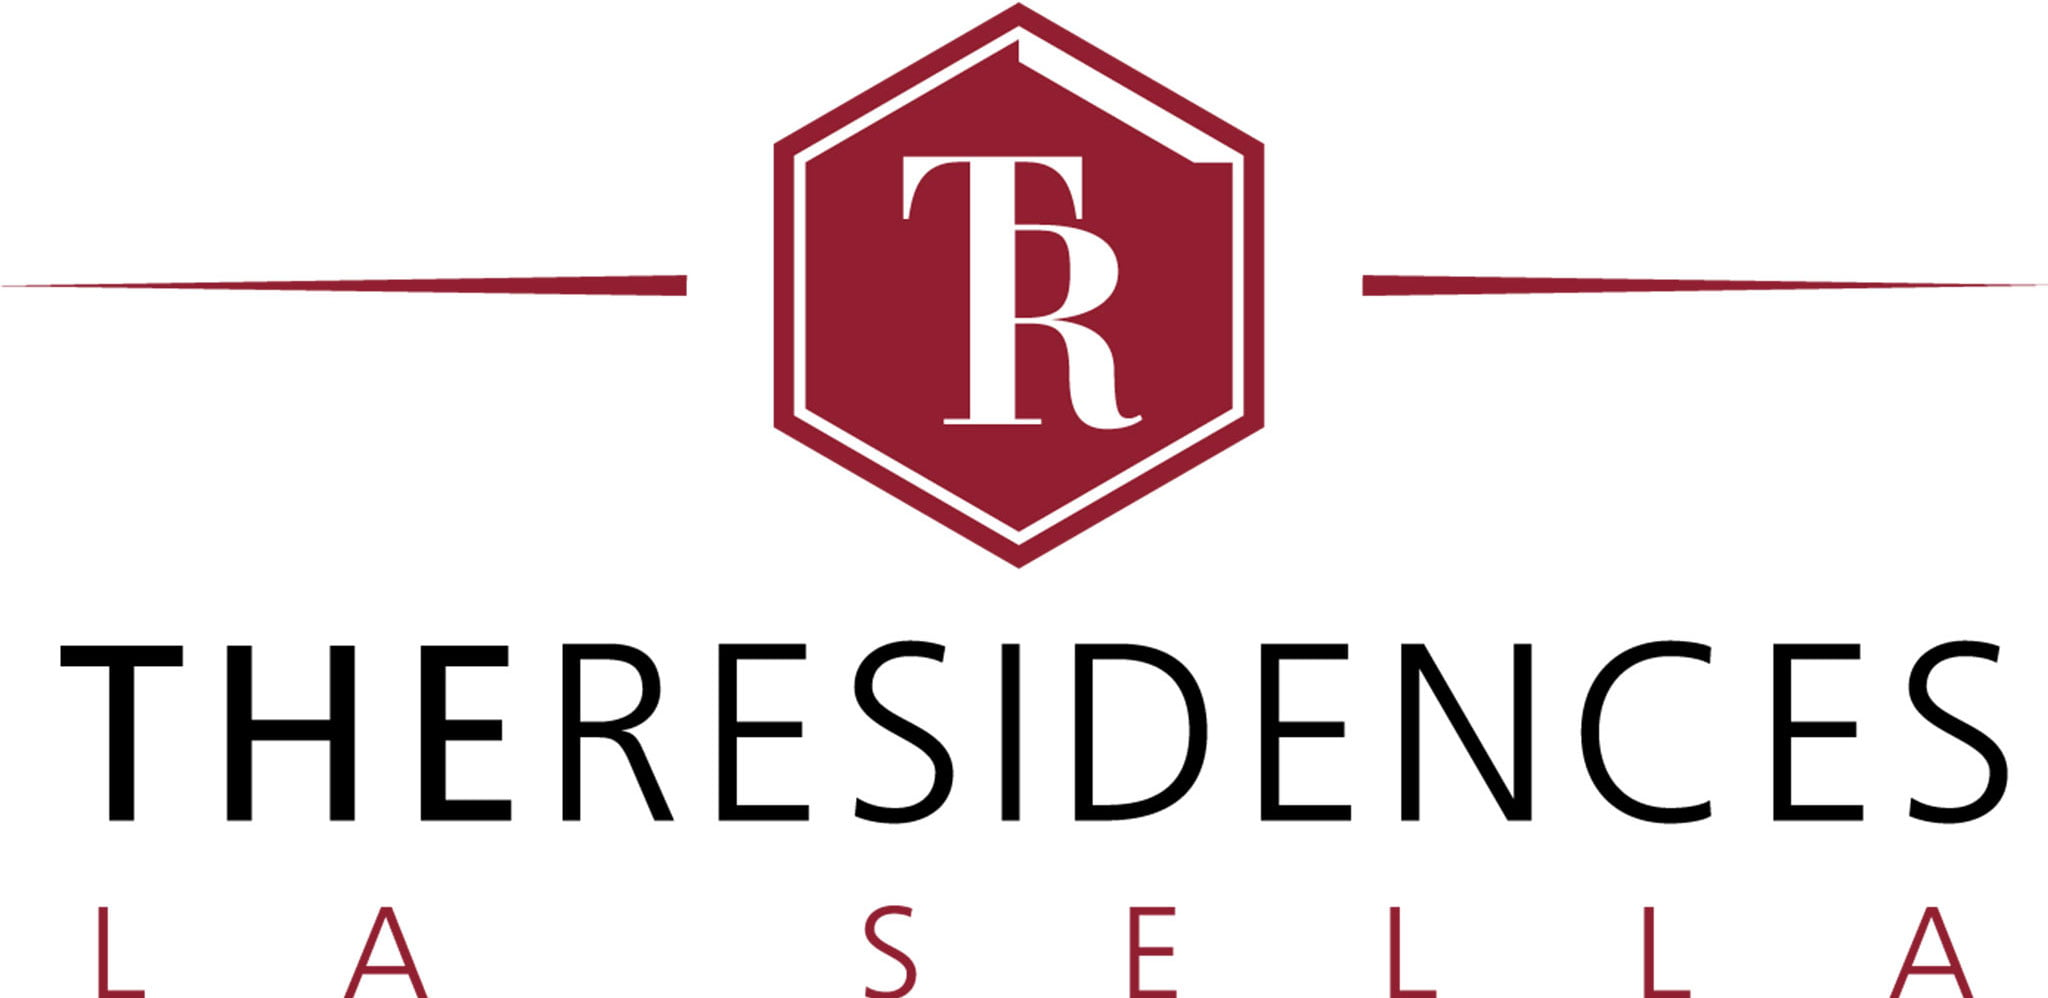 Logotipo de The Residences La Sella